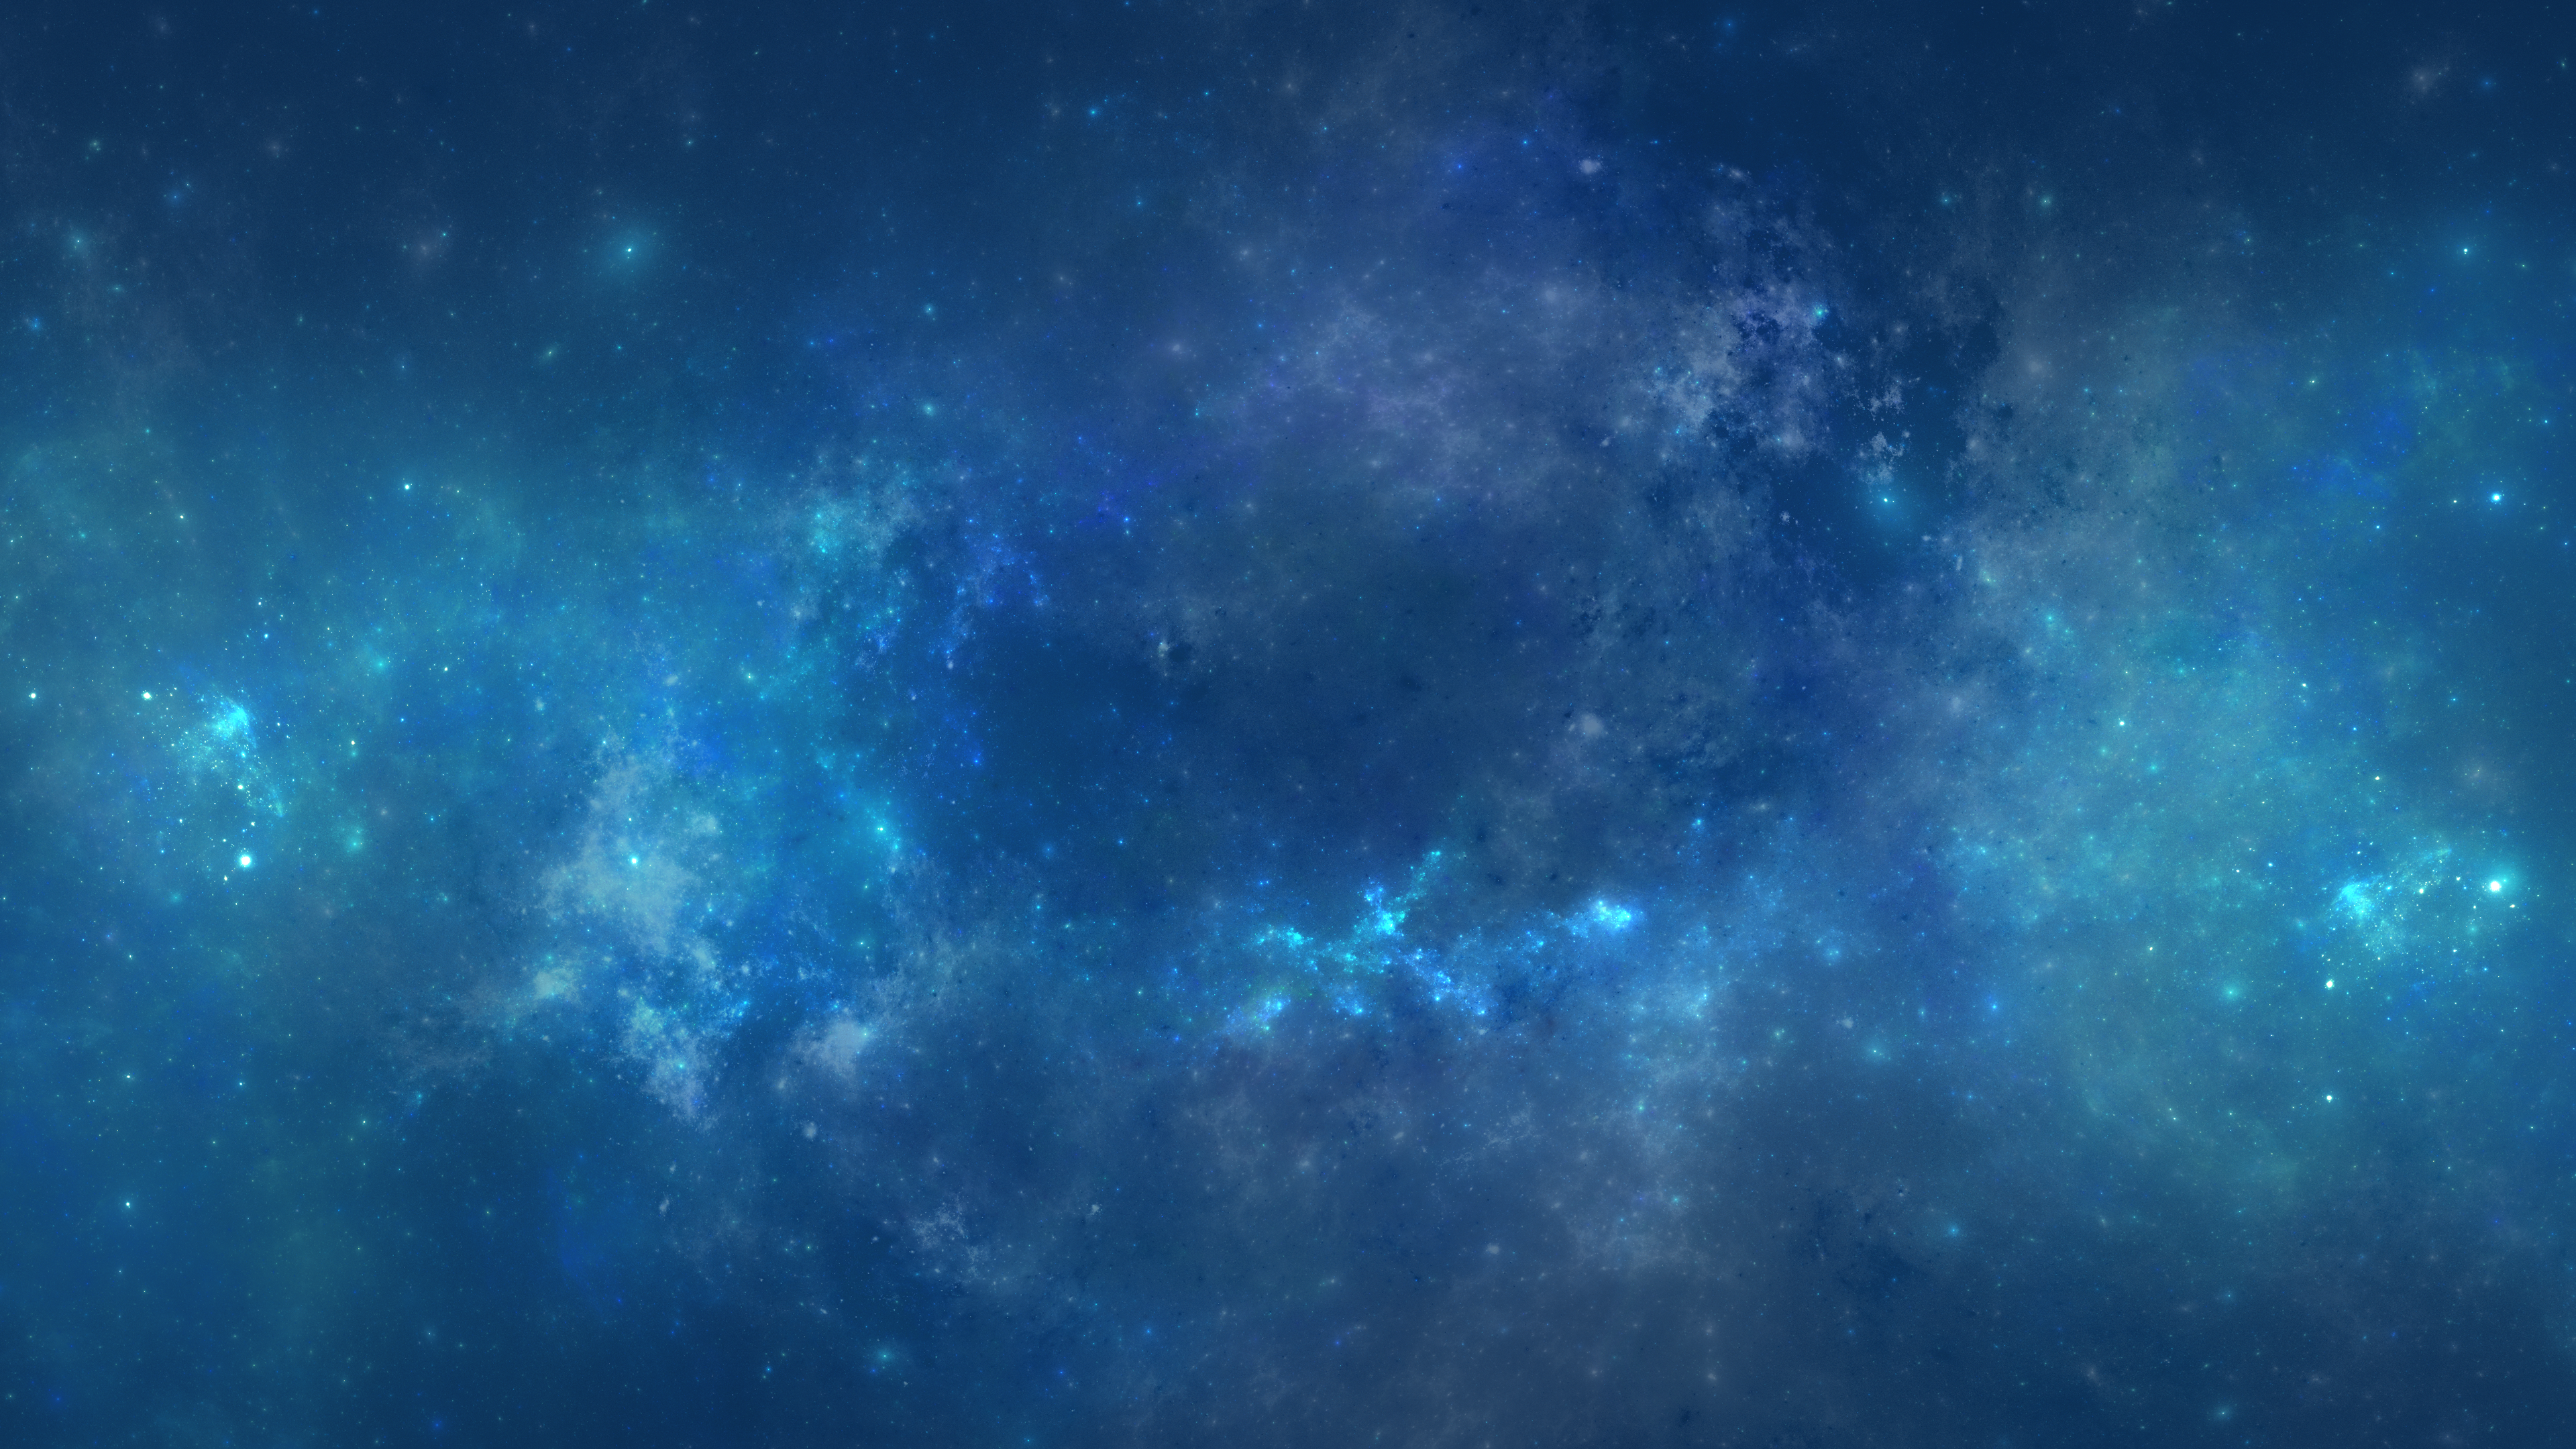 Full HD Wallpapers Blue Drawings and Paintings Space Nebulae 3840x2160